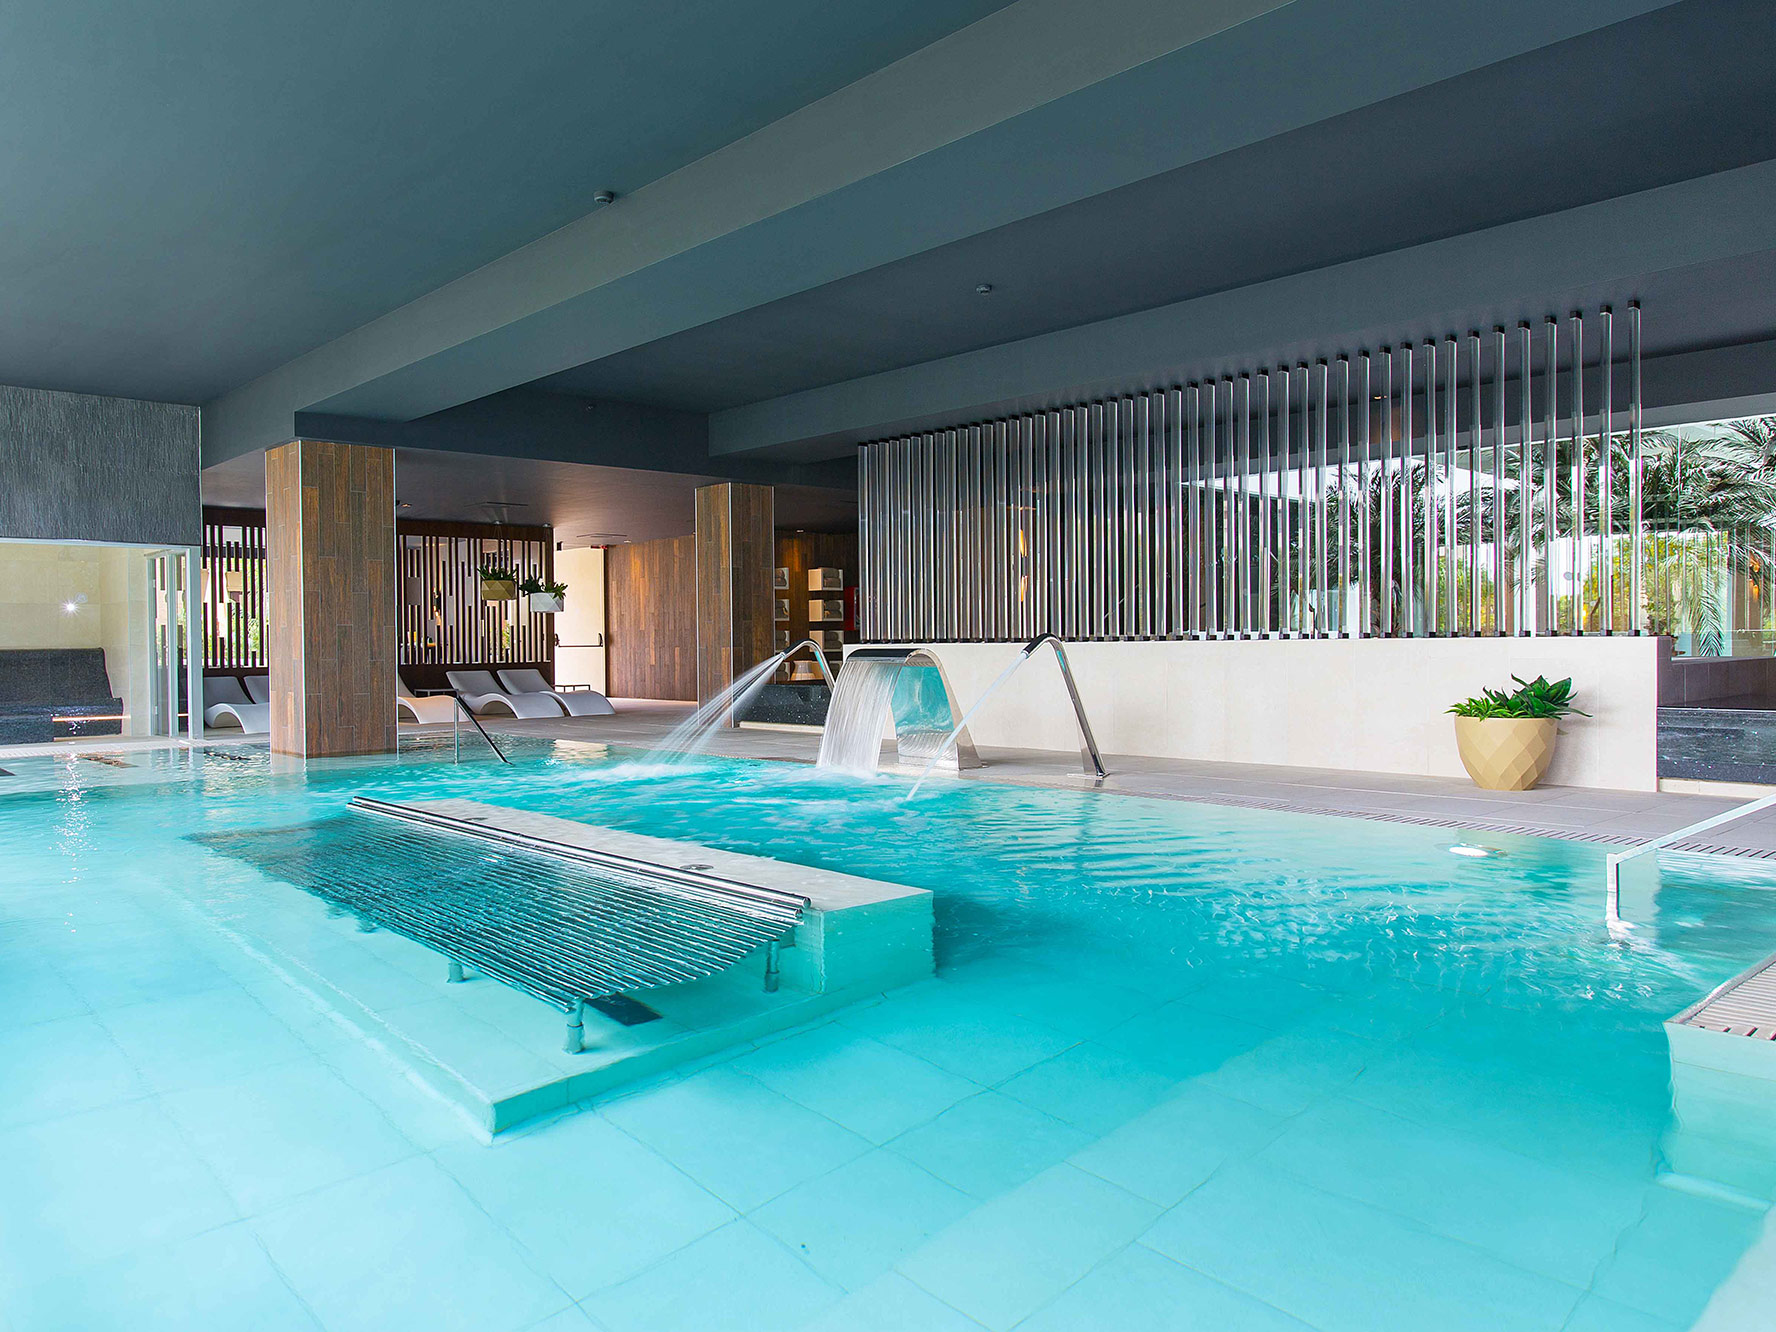 The Oasis Spa & Wellness Marbella | Interioristas Hospitality | MOEM Studio